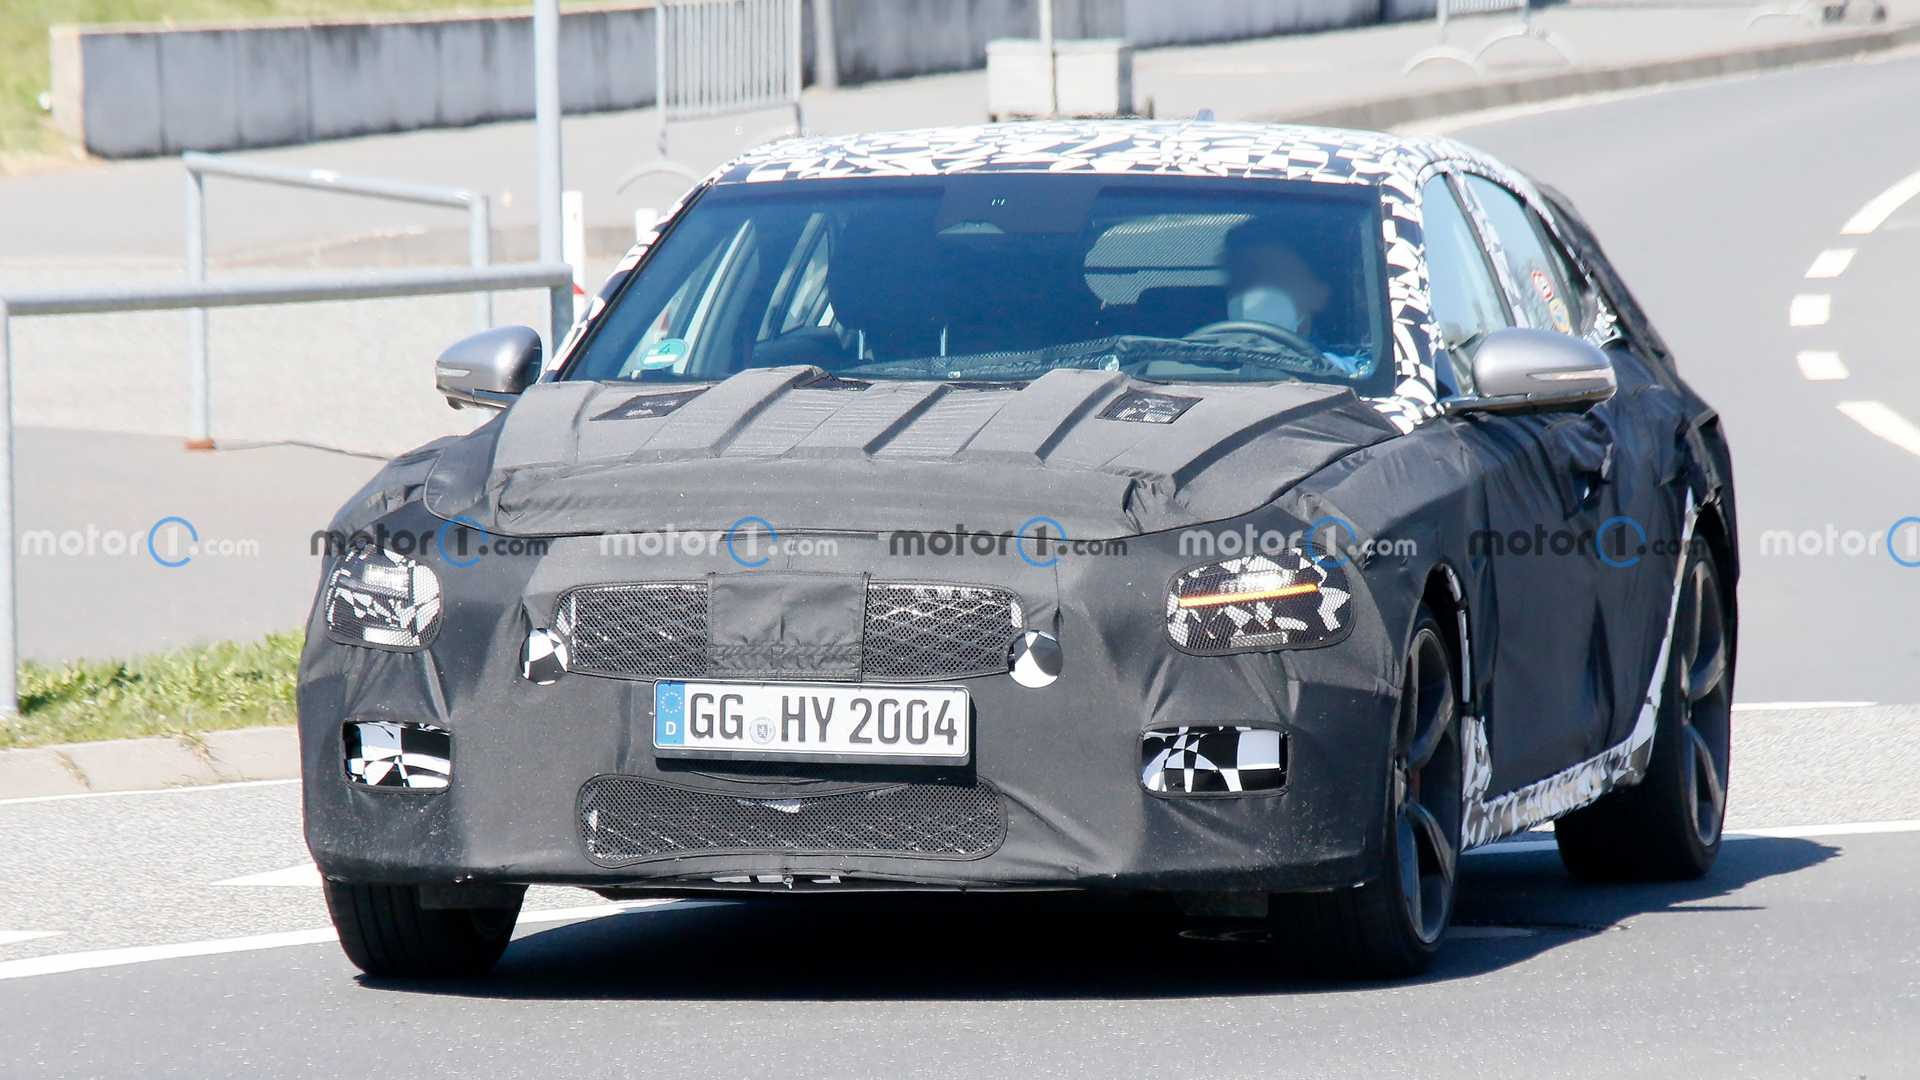 Camera-wielding spies first spotted the wagon version of the Genesis G70 nine months ago, so it would be about time for the car to start shedding its camo. However, the prototype detected this weekend in the Nürburgring paddock continues to hide itself under thick wrap and faux paneling.